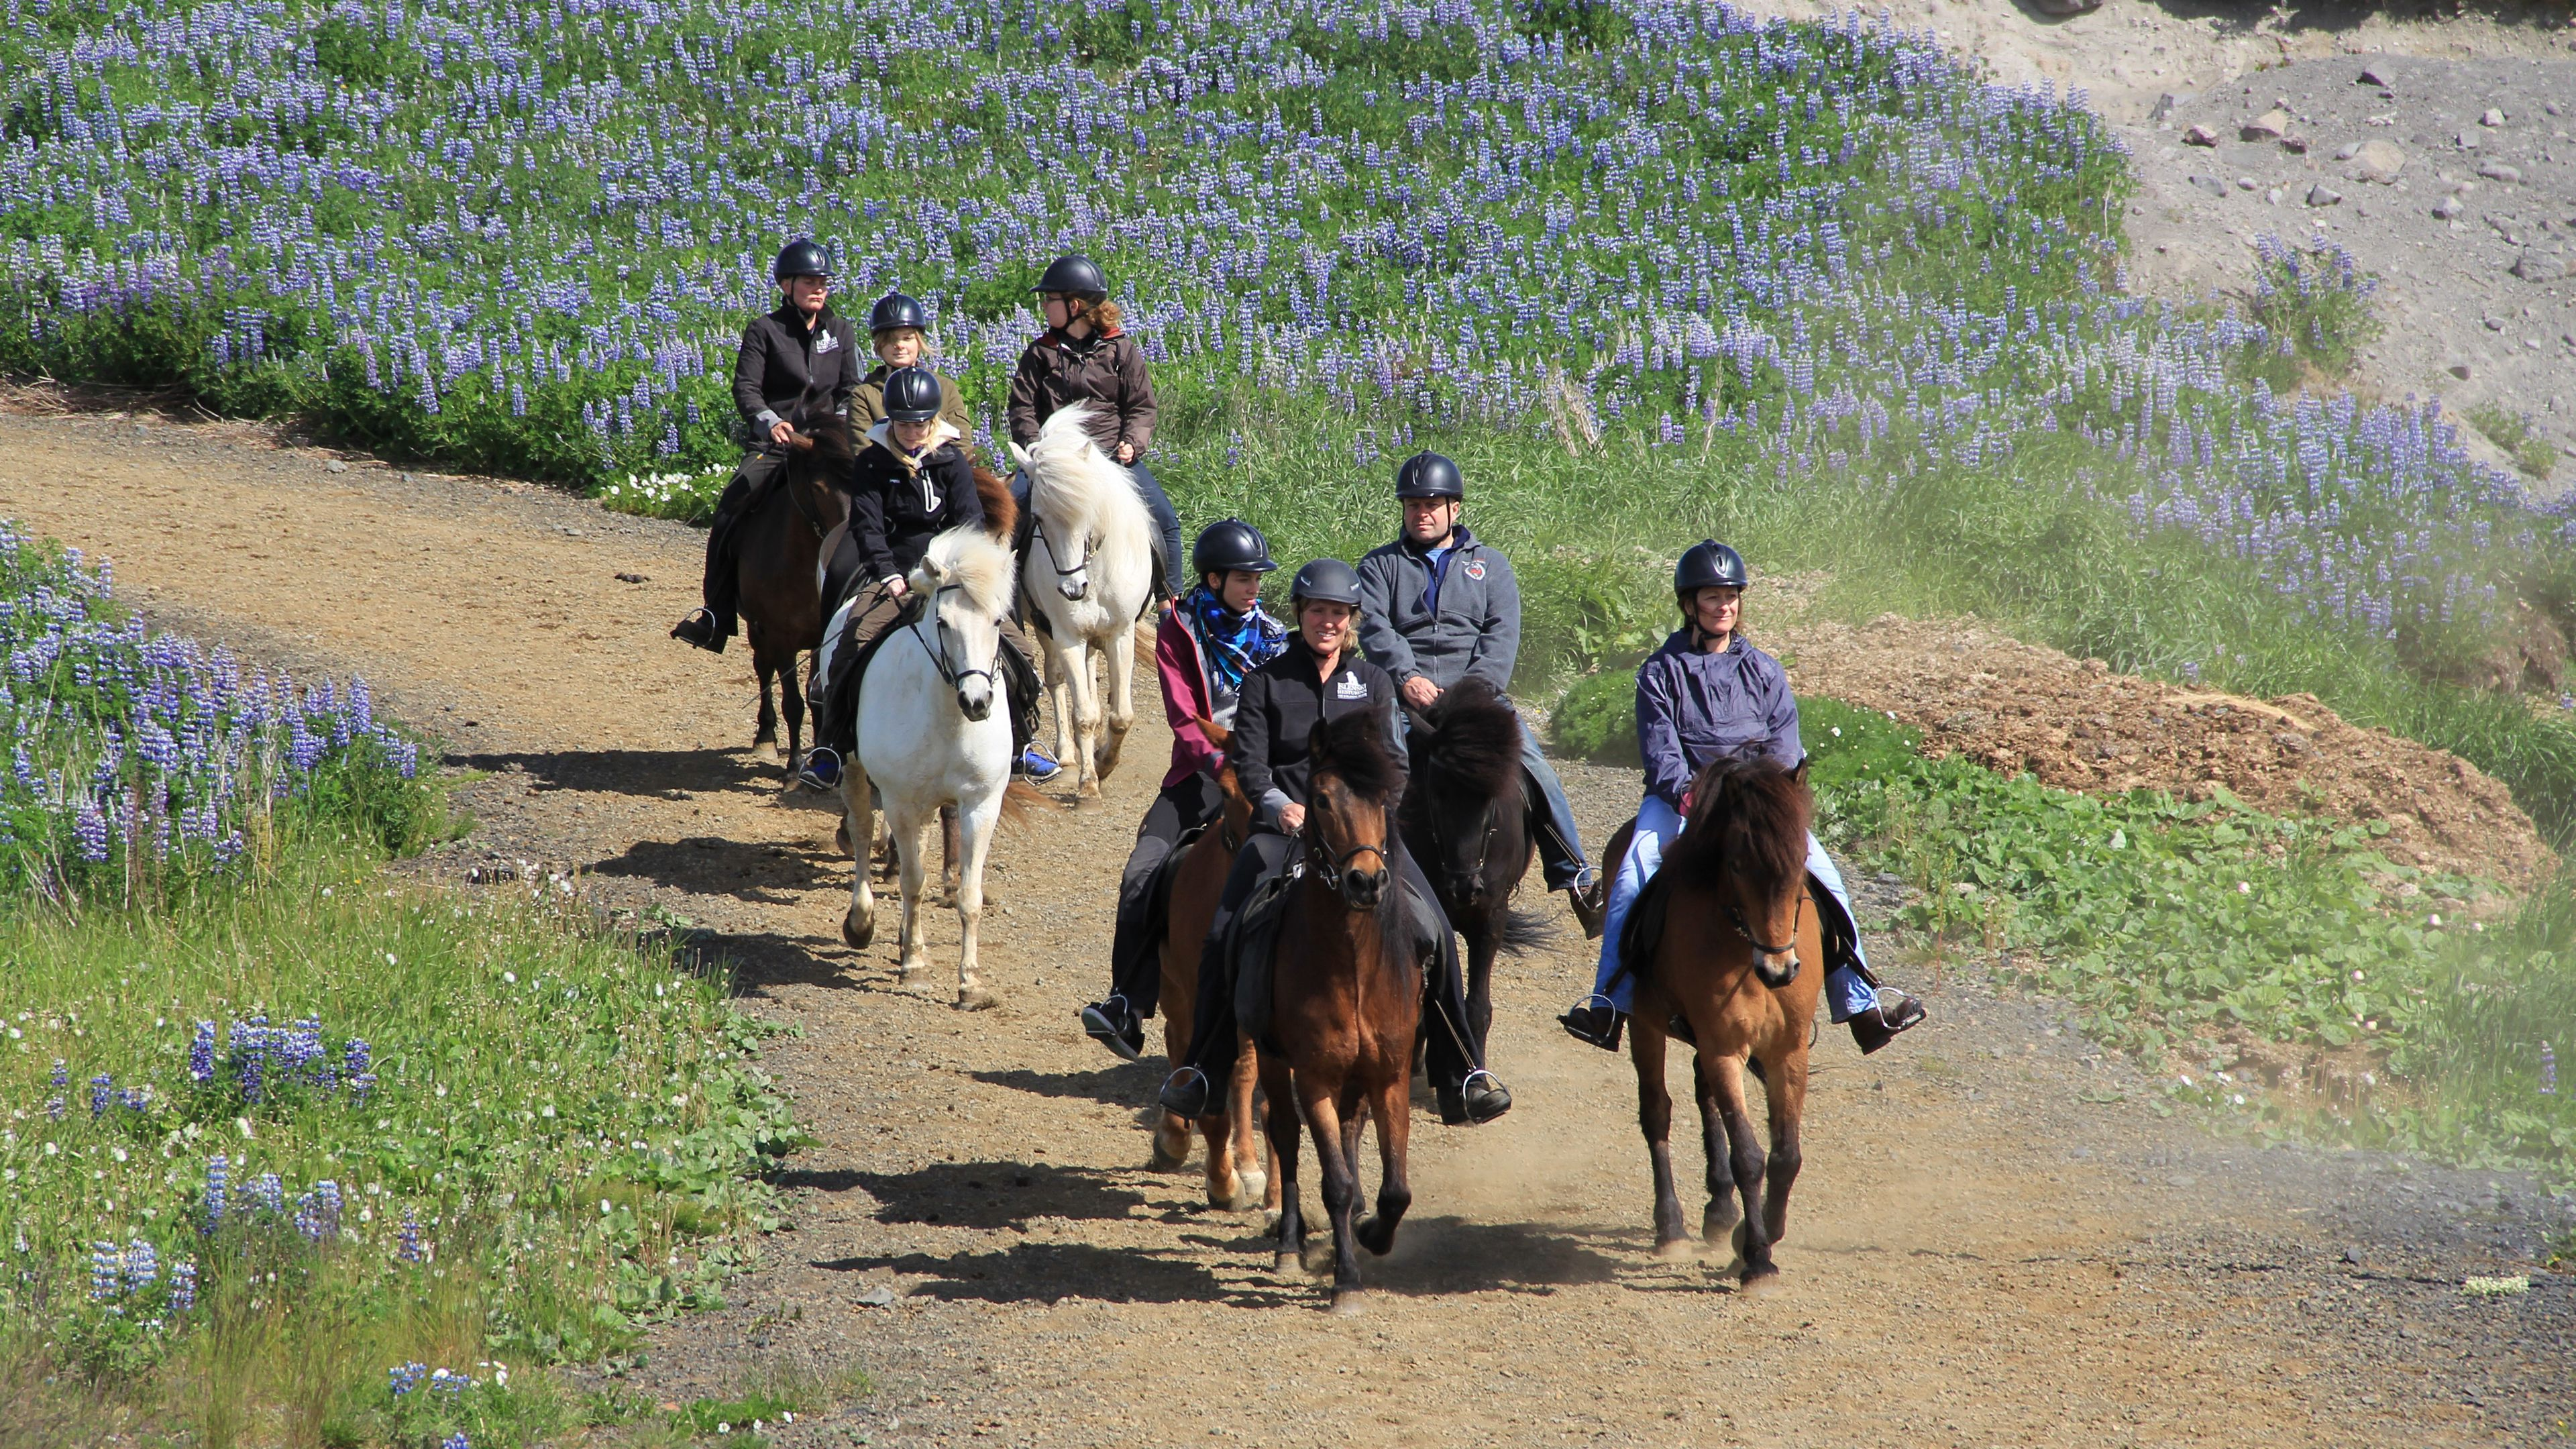 Group of horse back riders